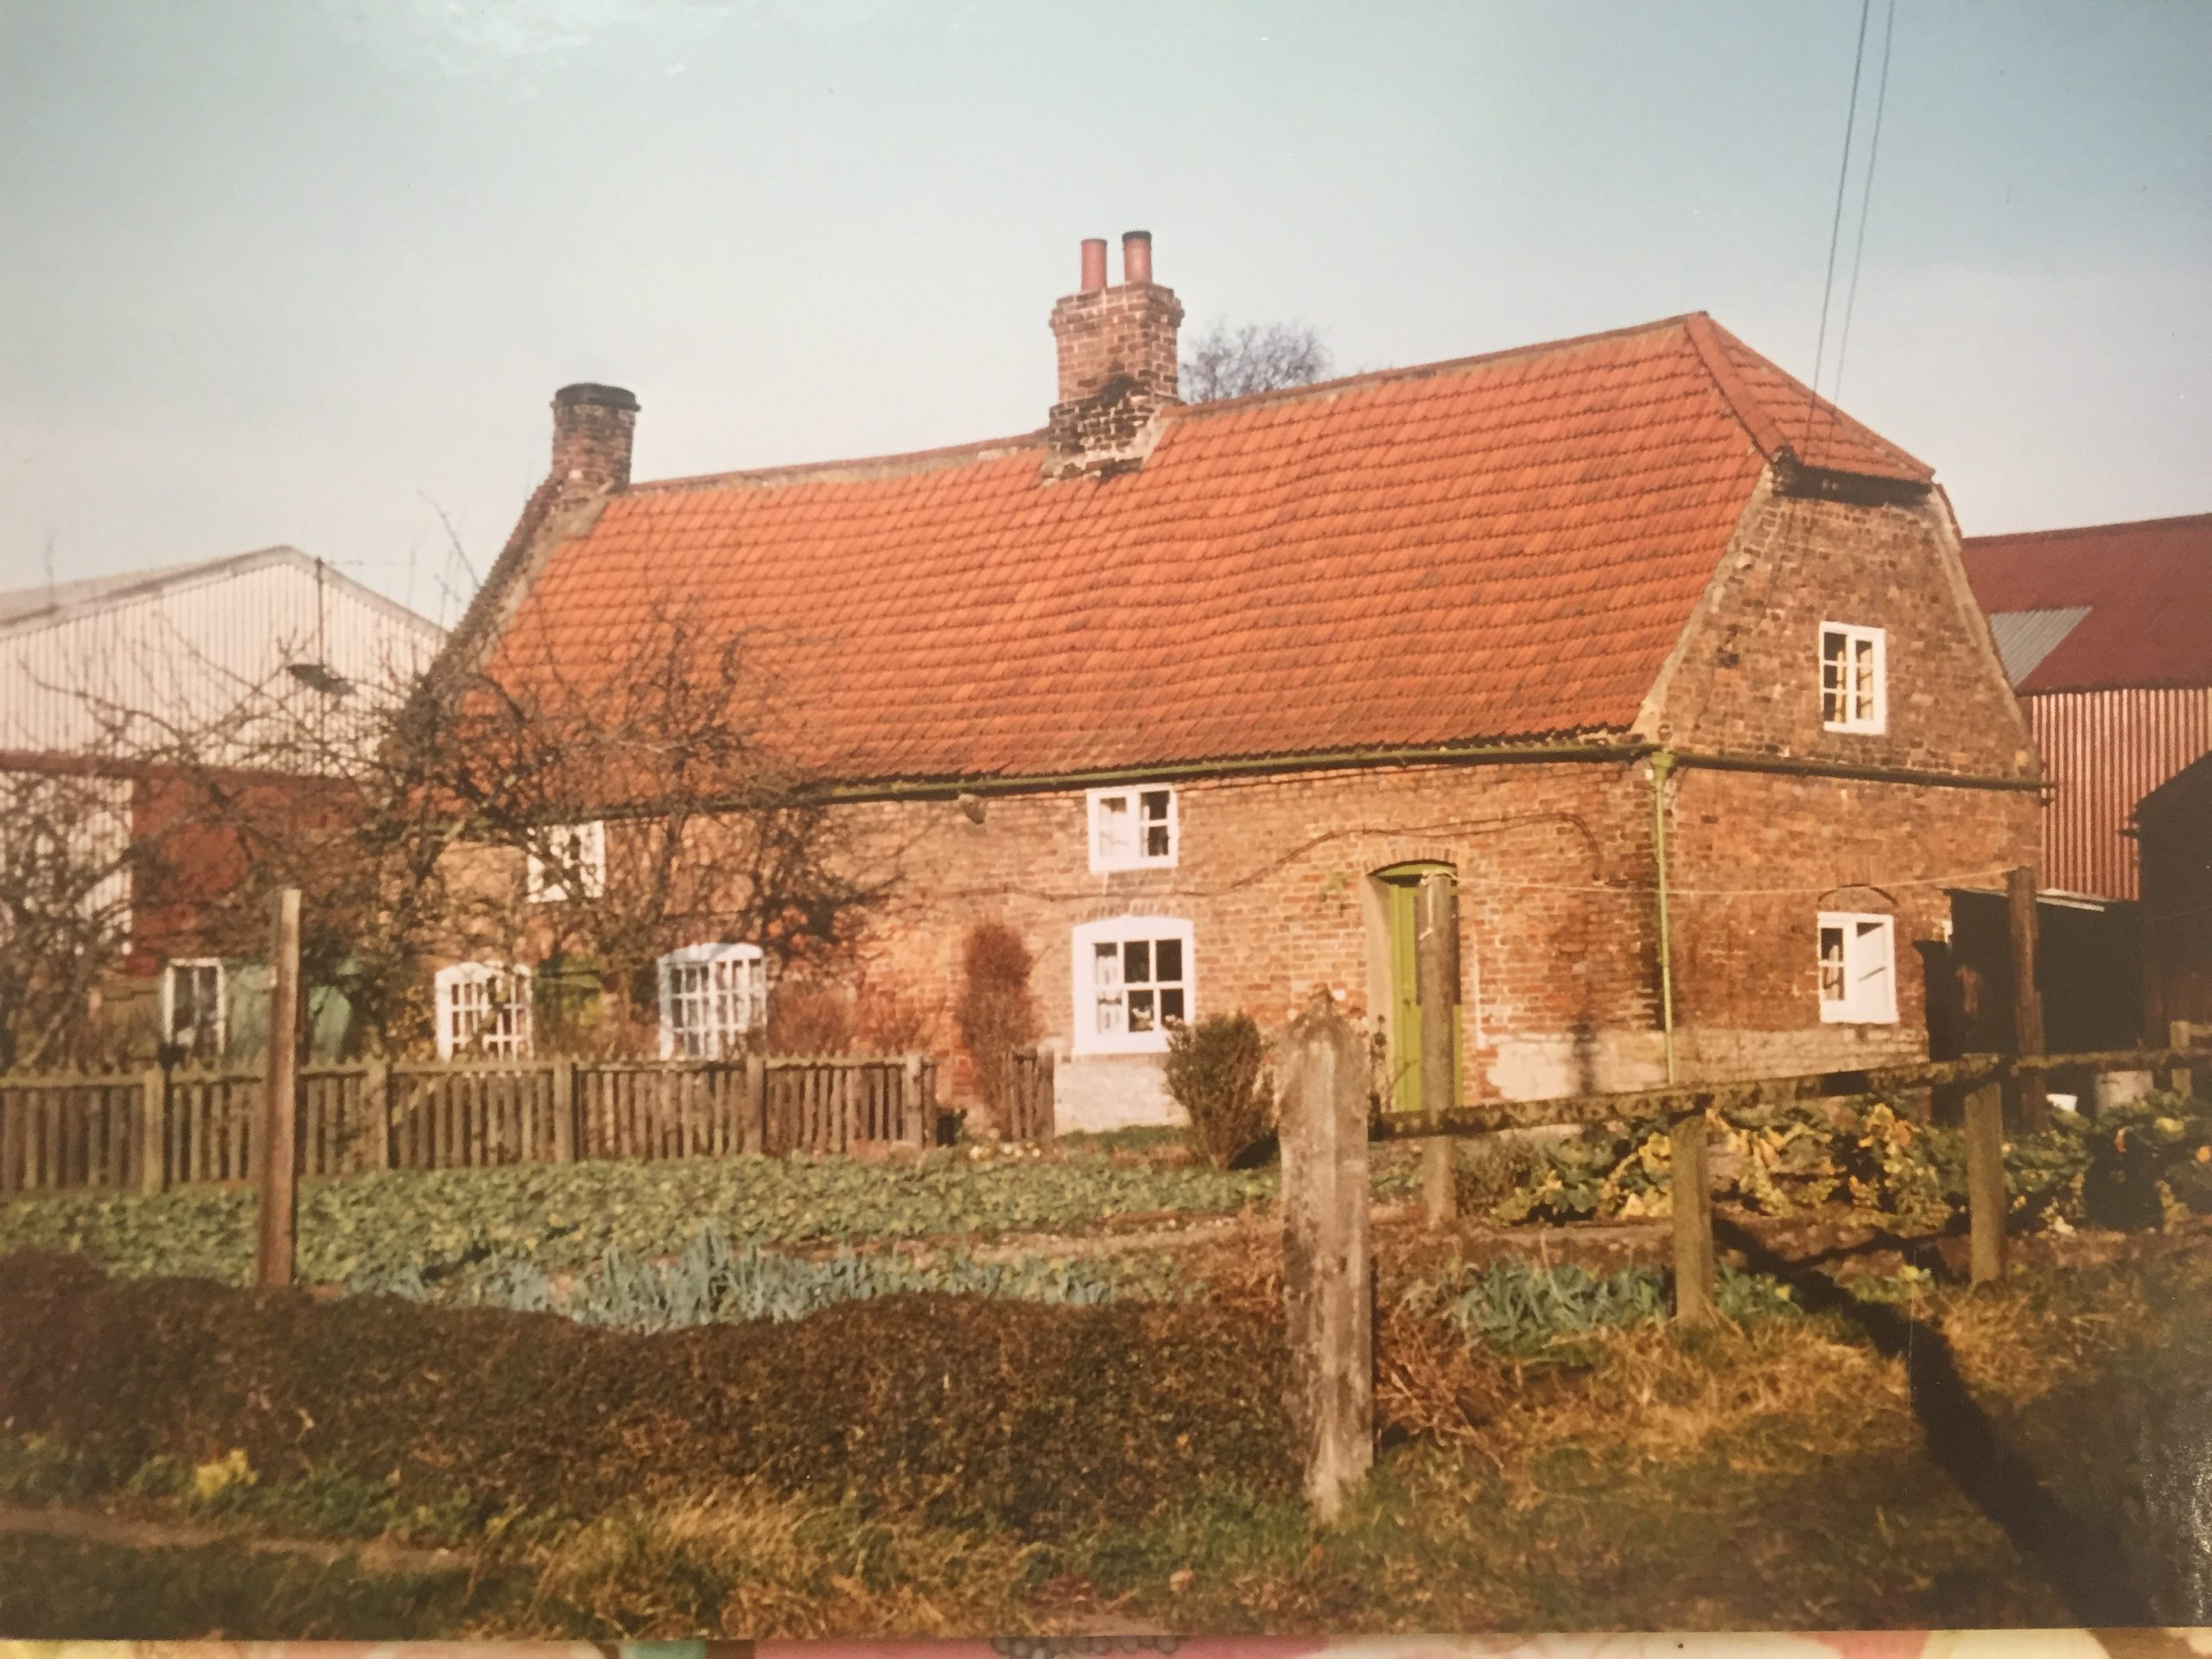 c1990 Morley Cottages